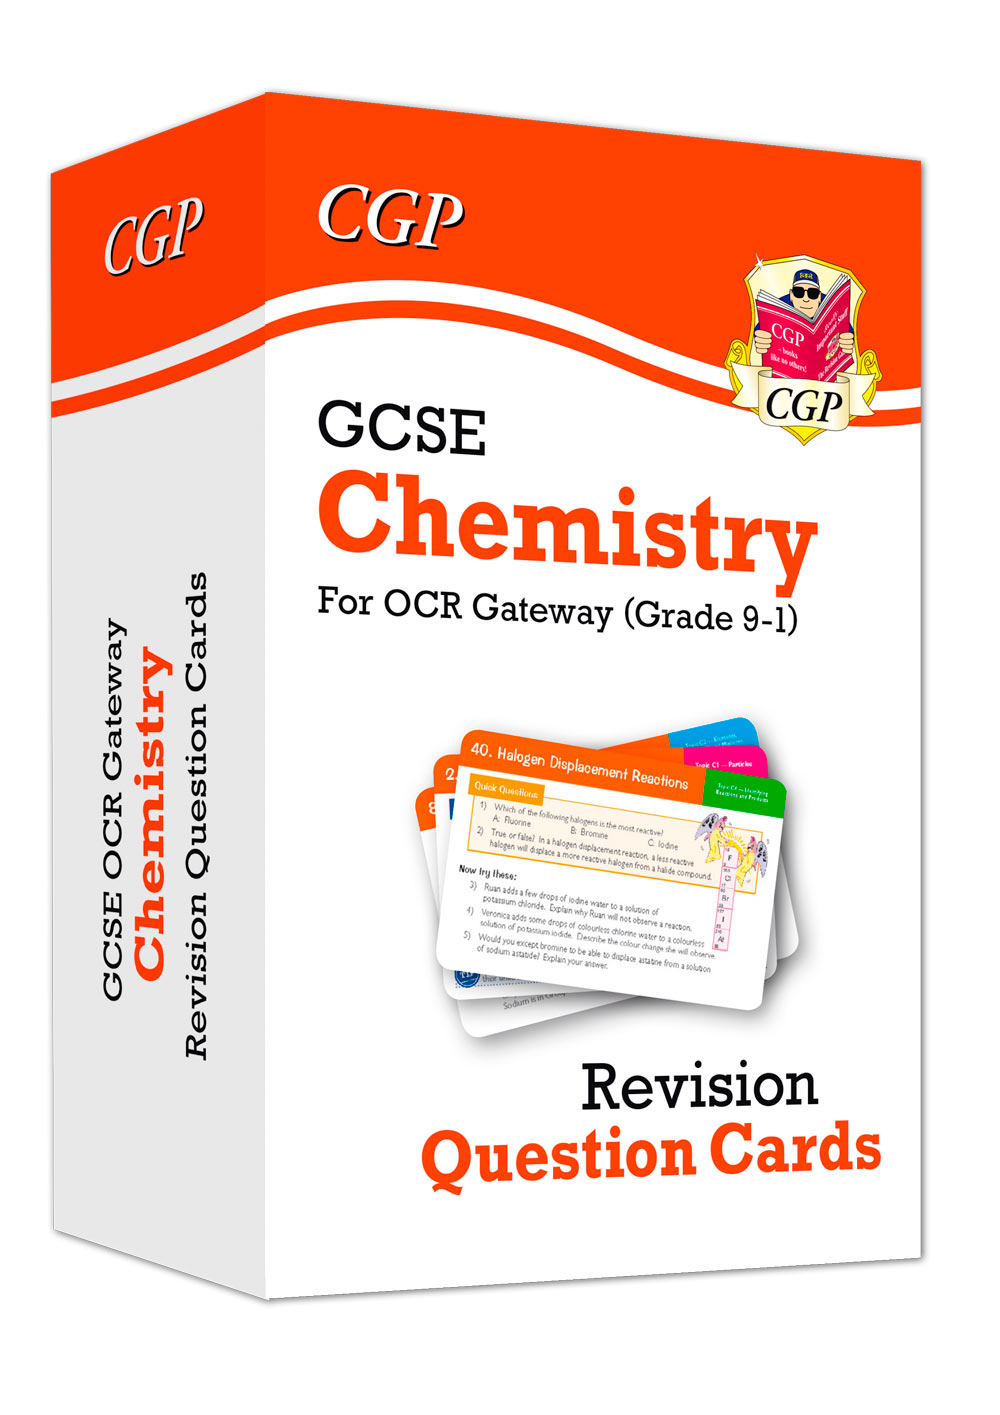 CRF41 - New 9-1 GCSE Chemistry OCR Gateway Revision Question Cards